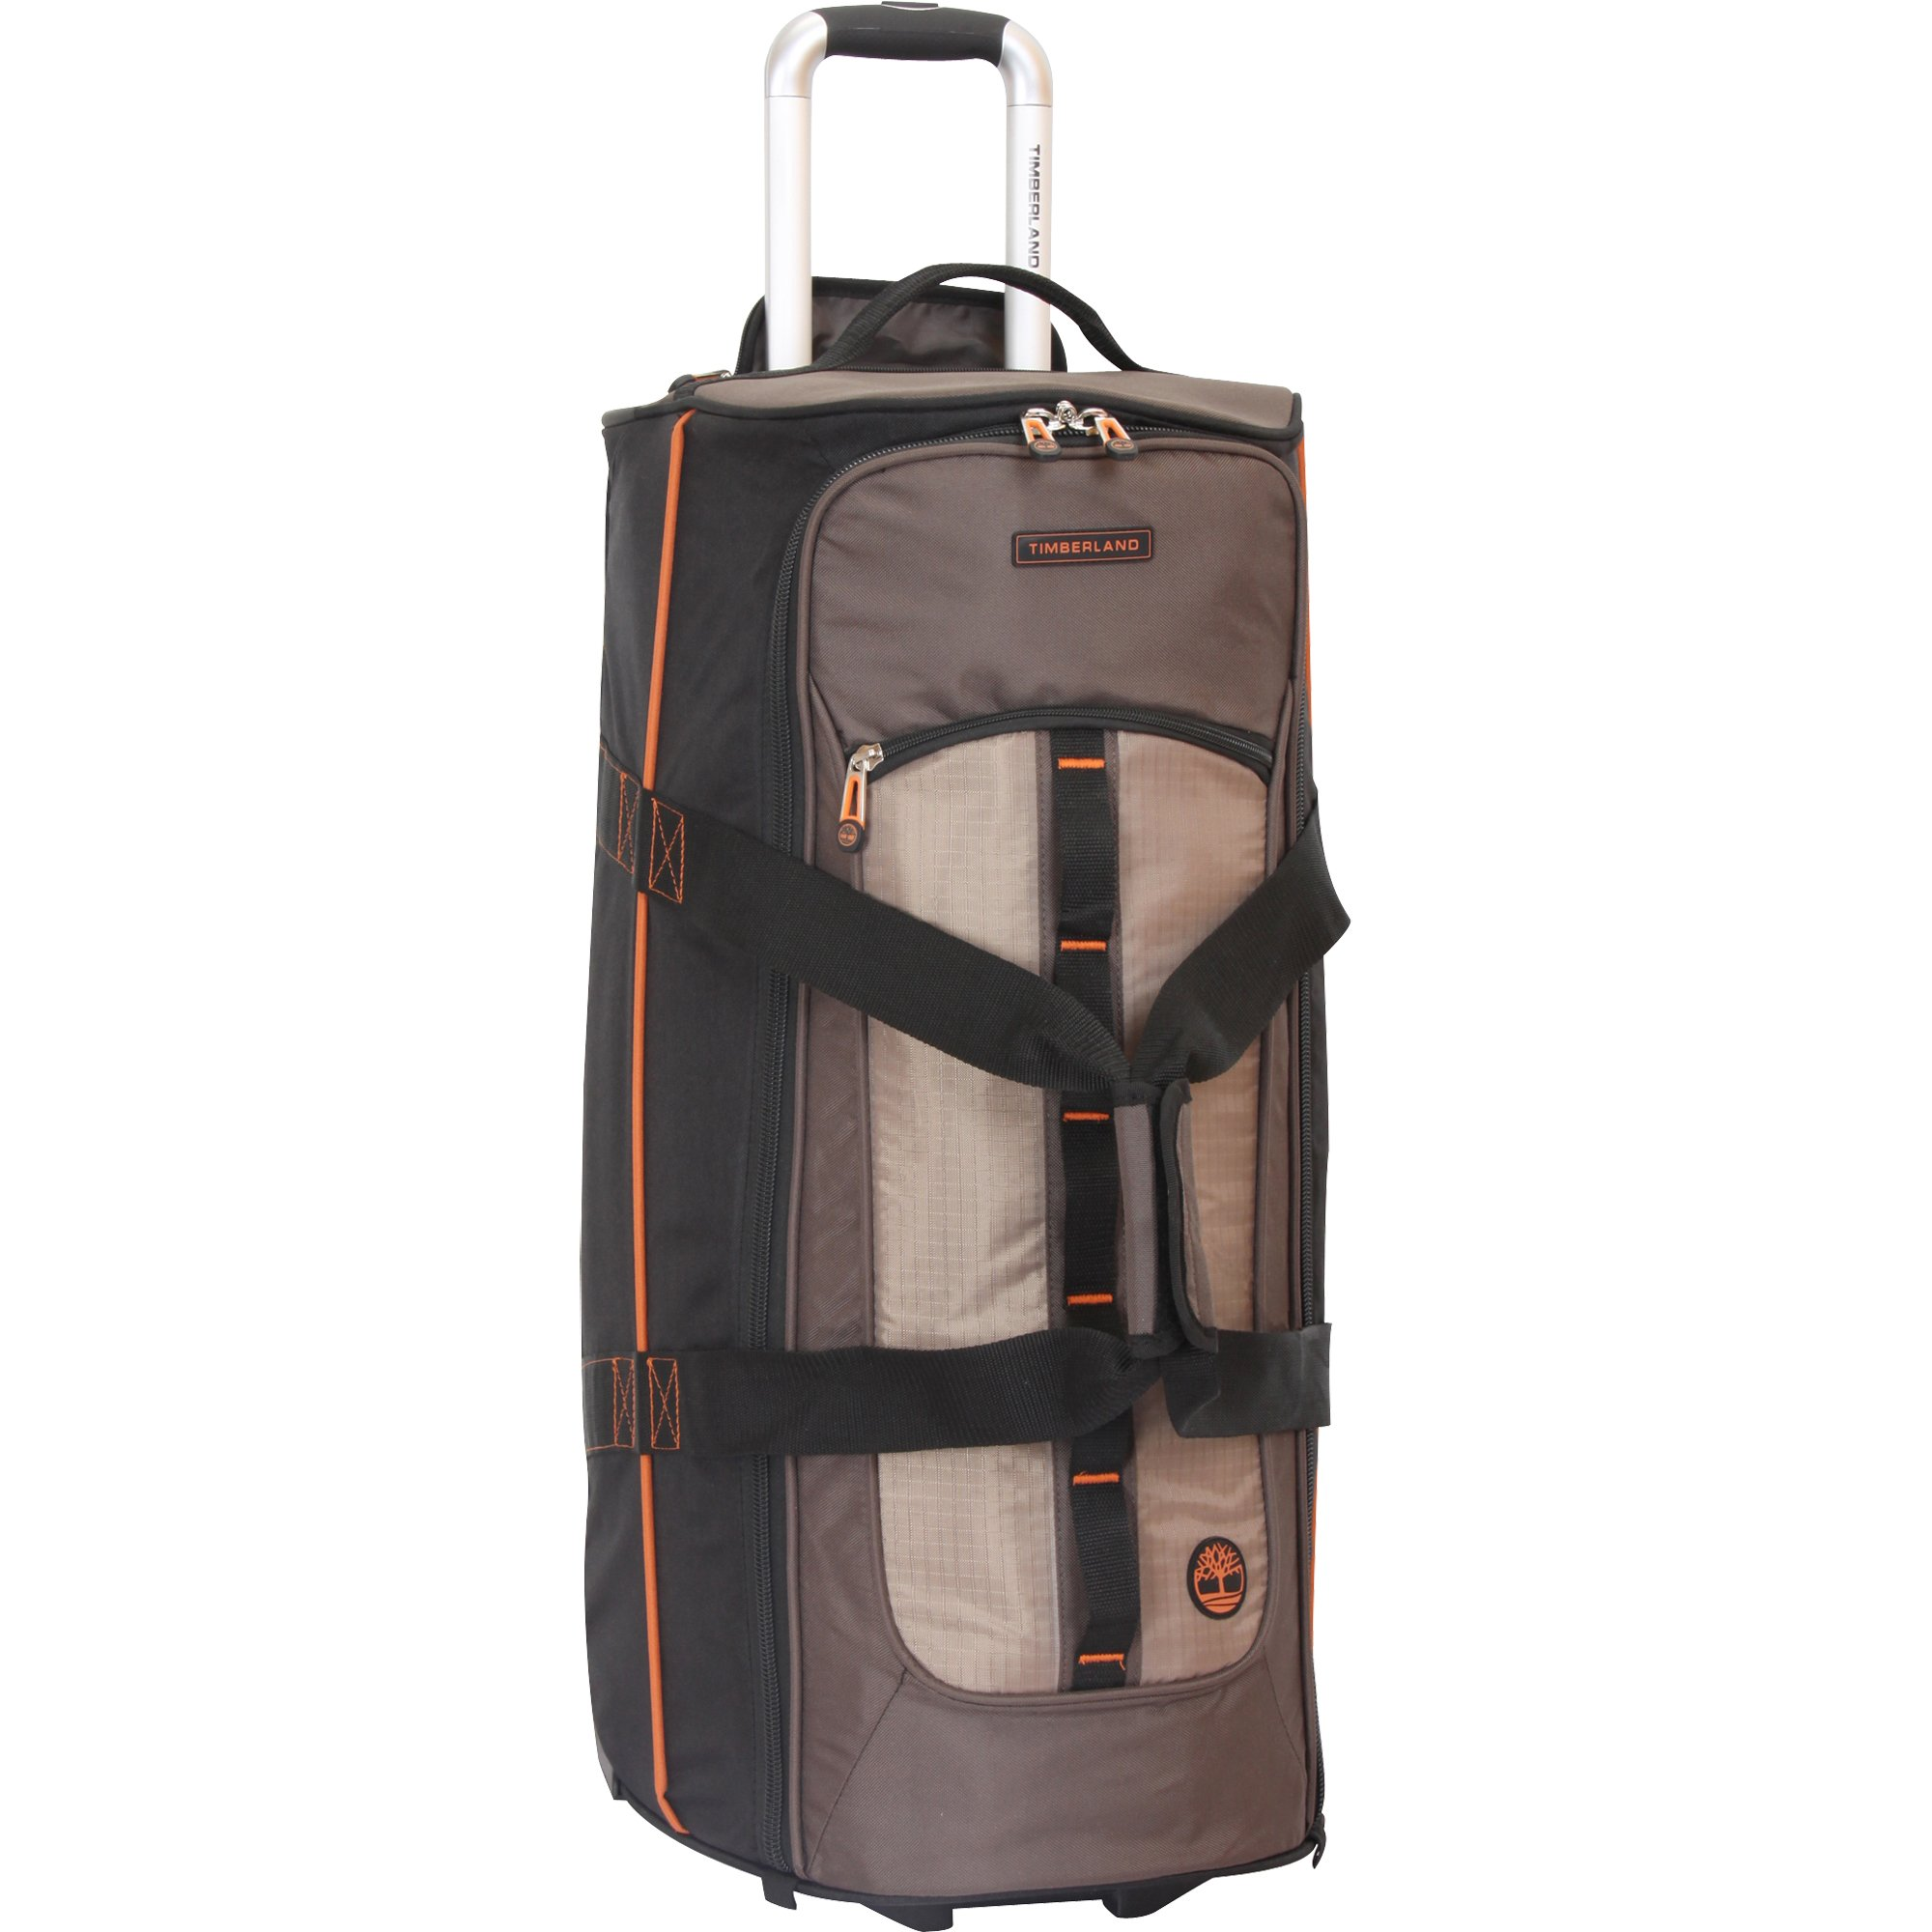 Timberland 28'' Wheeled Duffle Luggage Bag, Cocoa